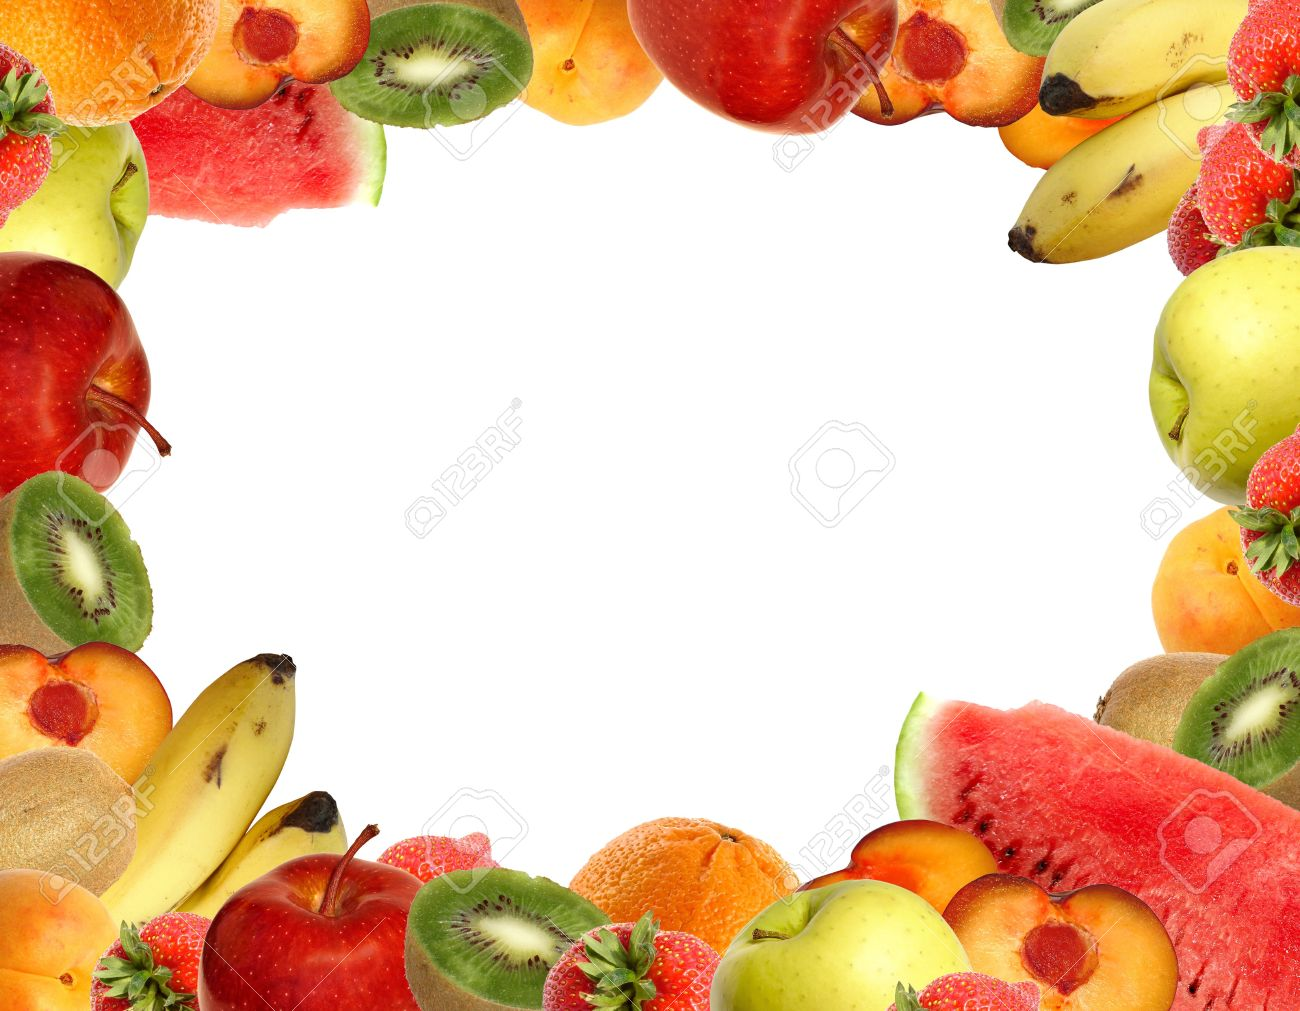 Fruit collection isolated on white. Stock Photo - 3123539